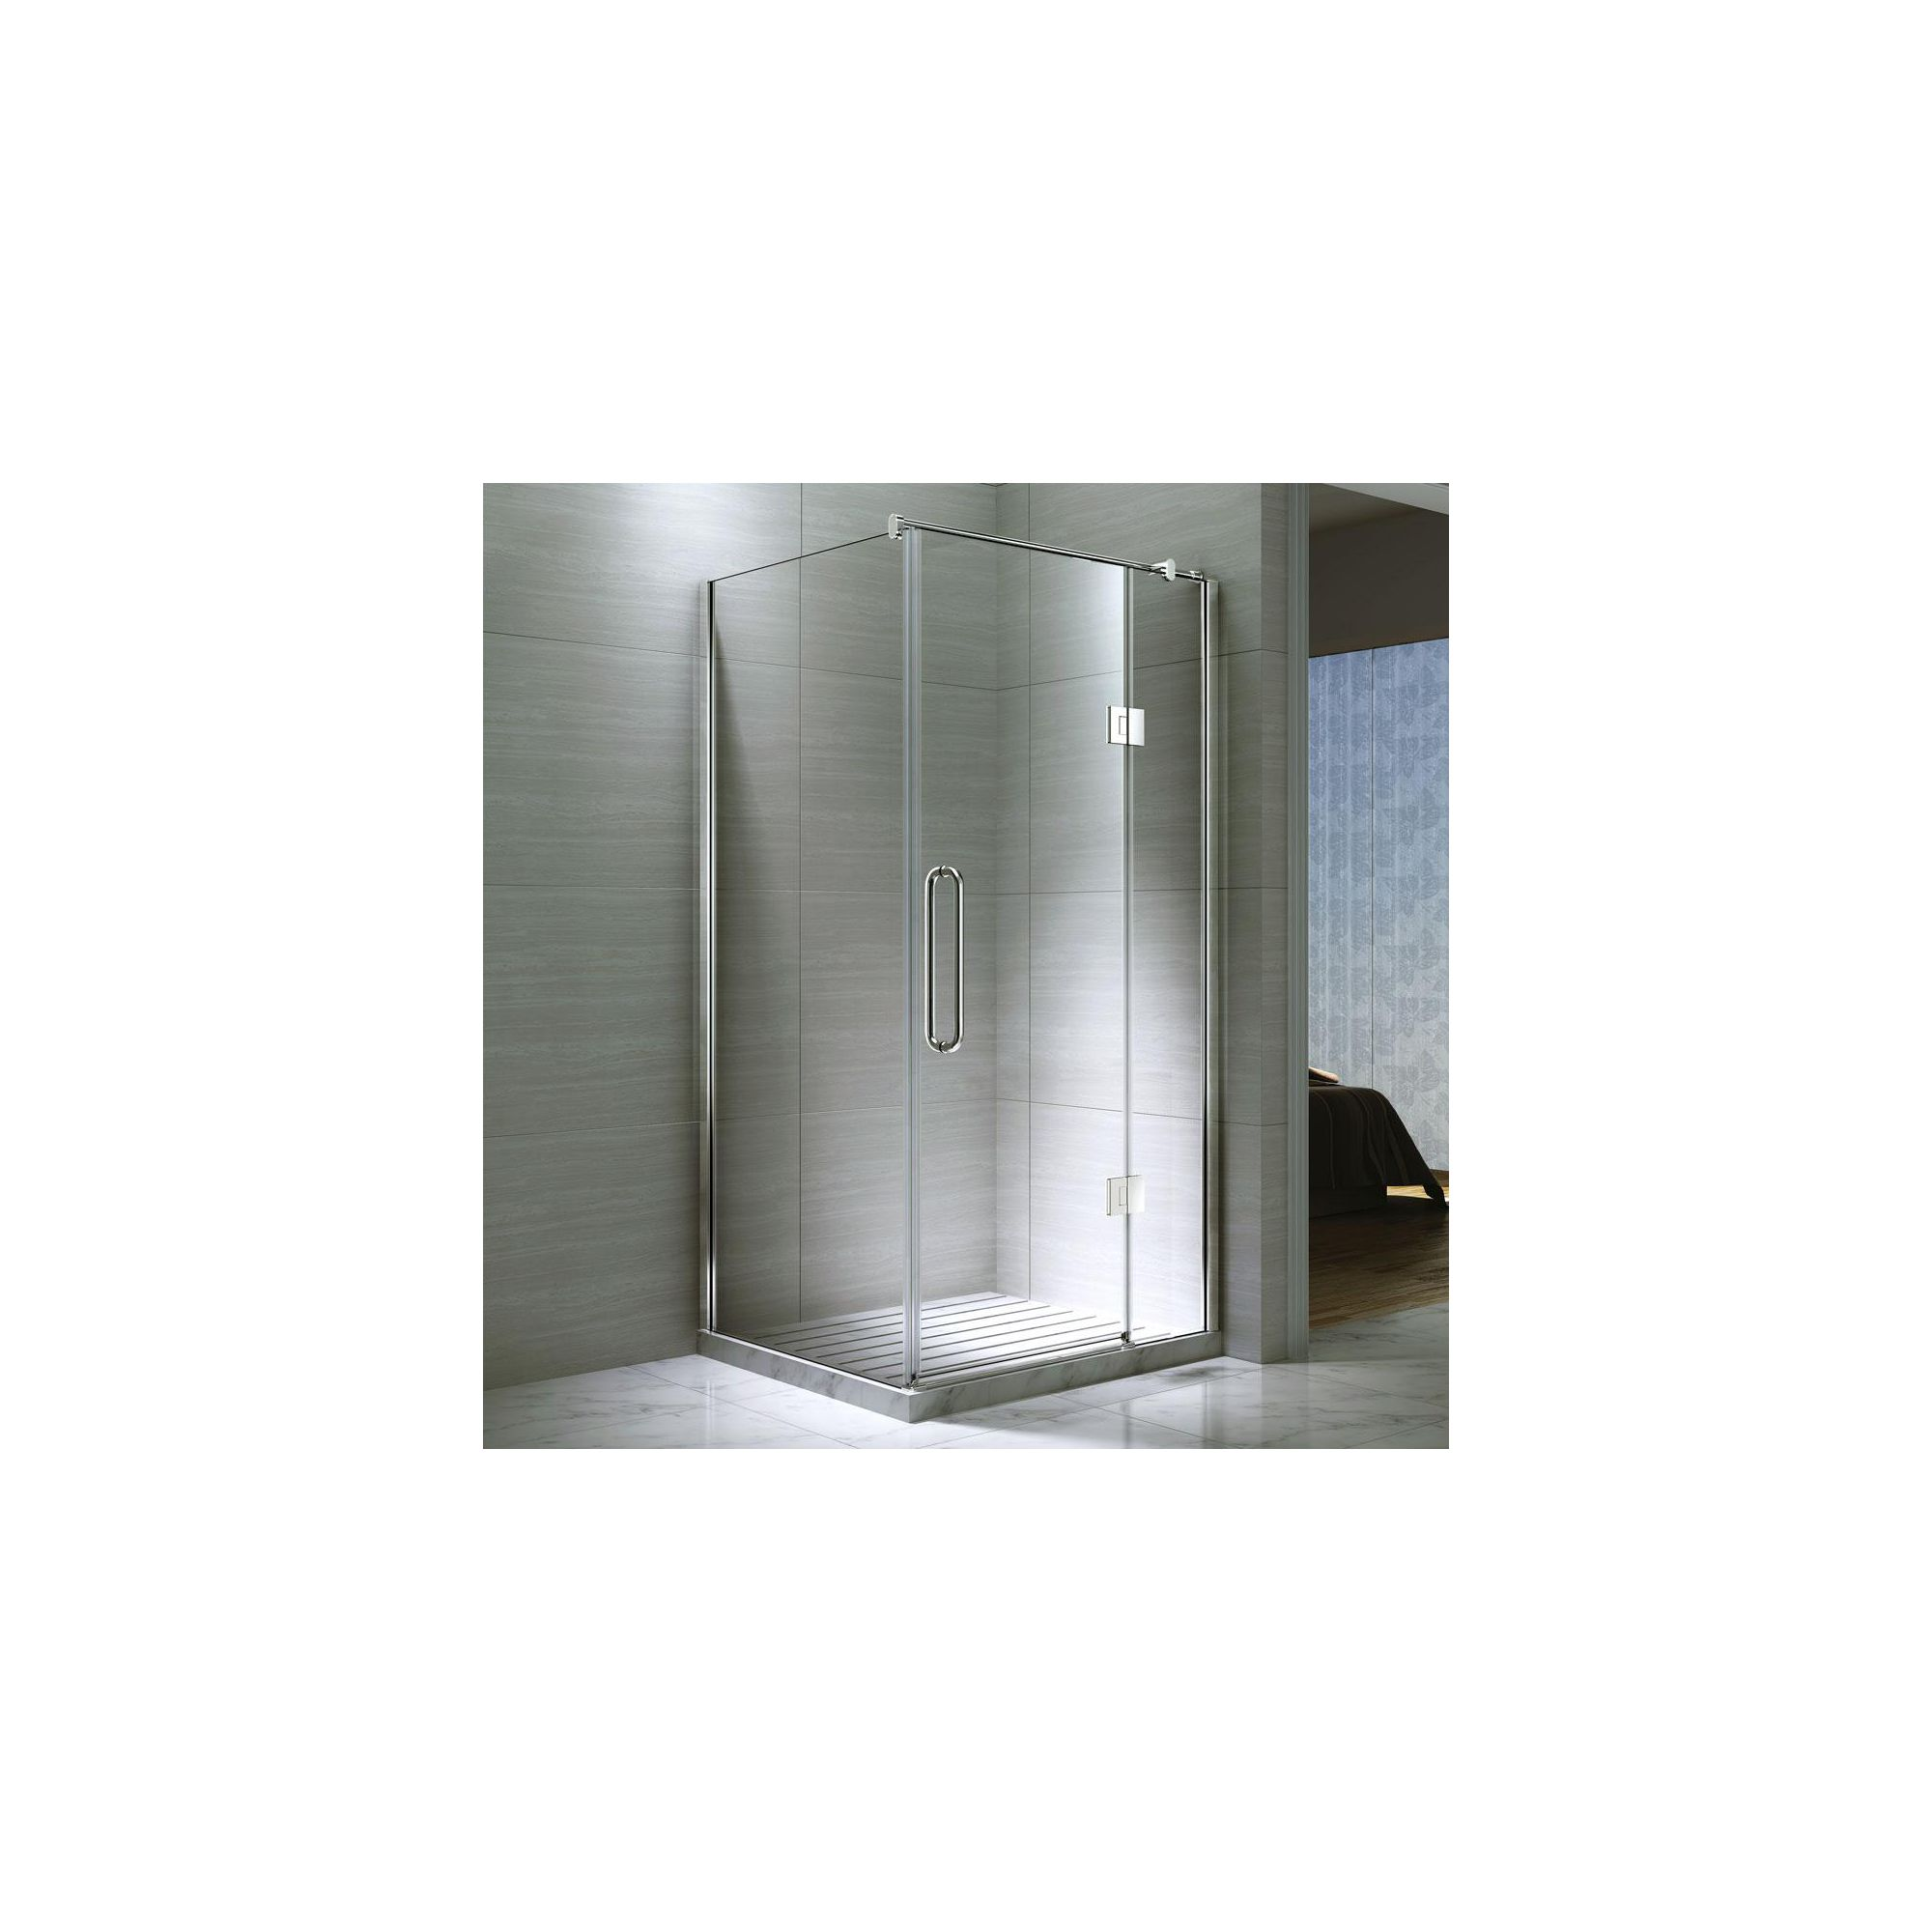 Desire Ten Hinged Shower Door with Side Panel, 1000mm x 800mm, Semi-Frameless, 10mm Glass at Tesco Direct